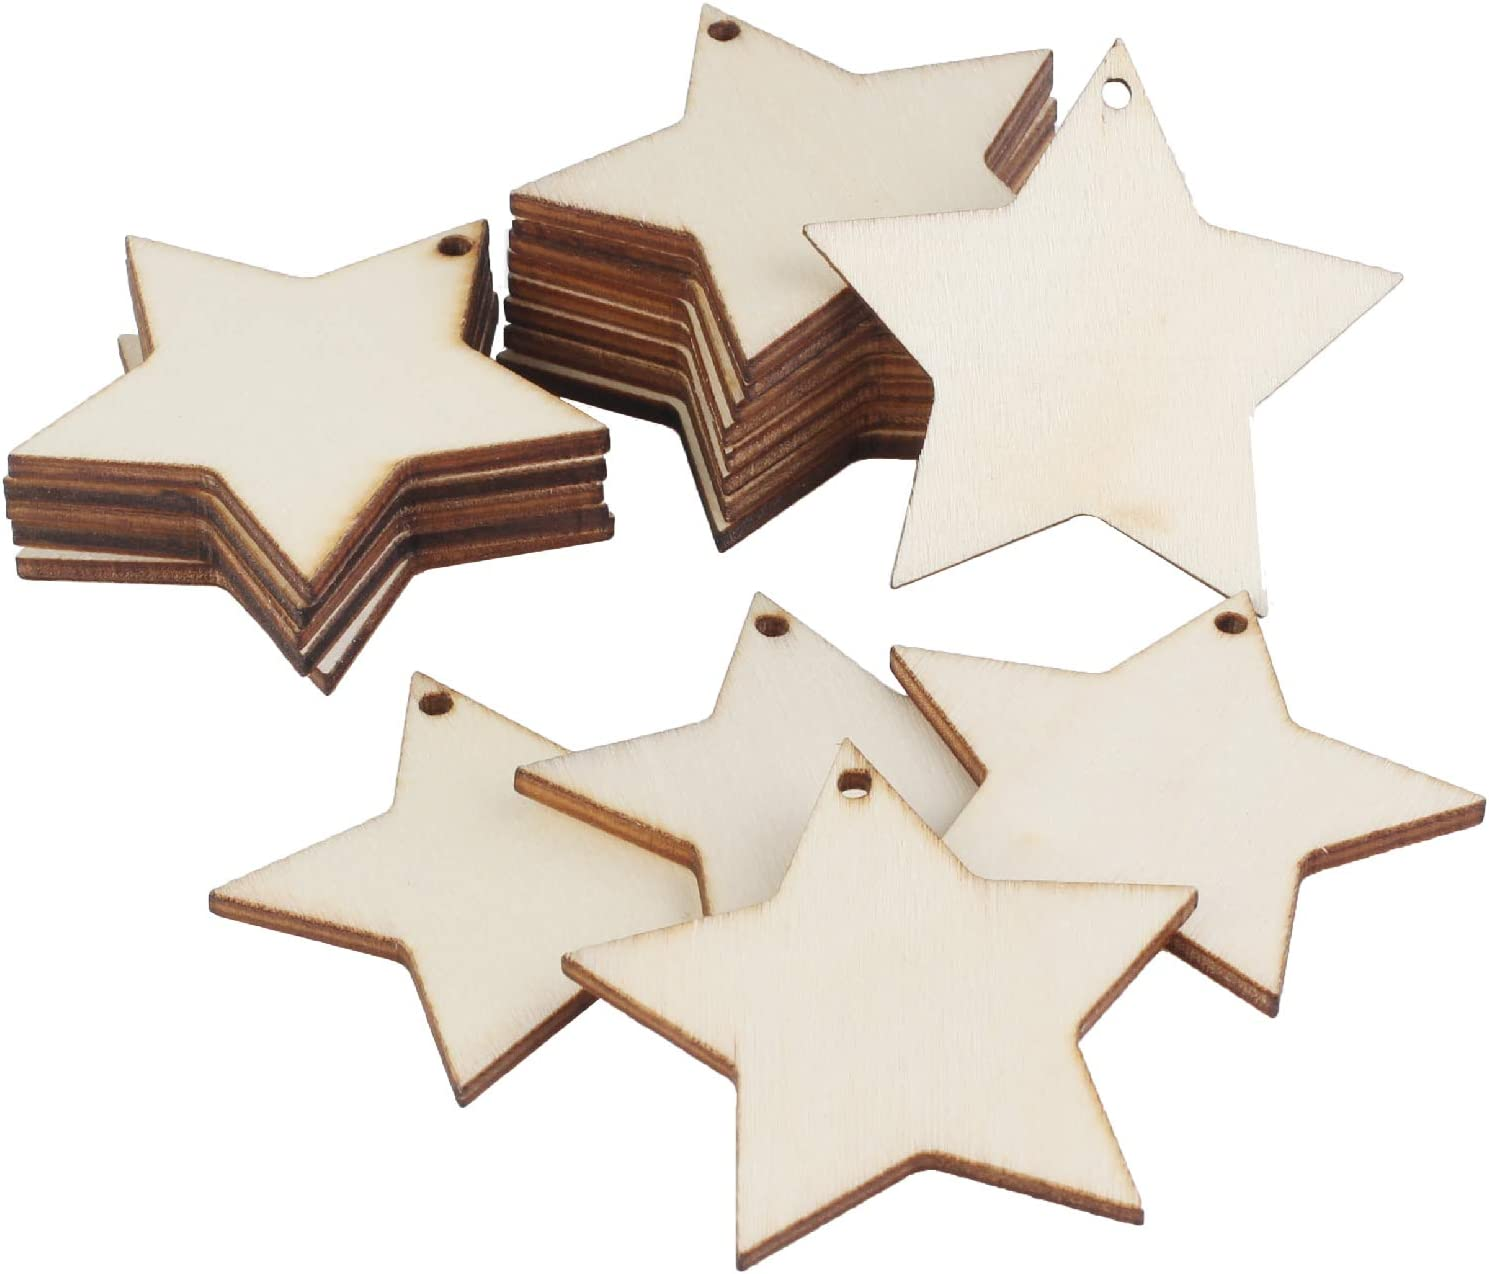 50pcs 1.85 Wooden Love Heart Slices UTOPER Blank Name Tags with Hole Unfinished Wood Cutout Labels Art Craft Pieces for Wedding Party Christmas DIY Projects Card Making